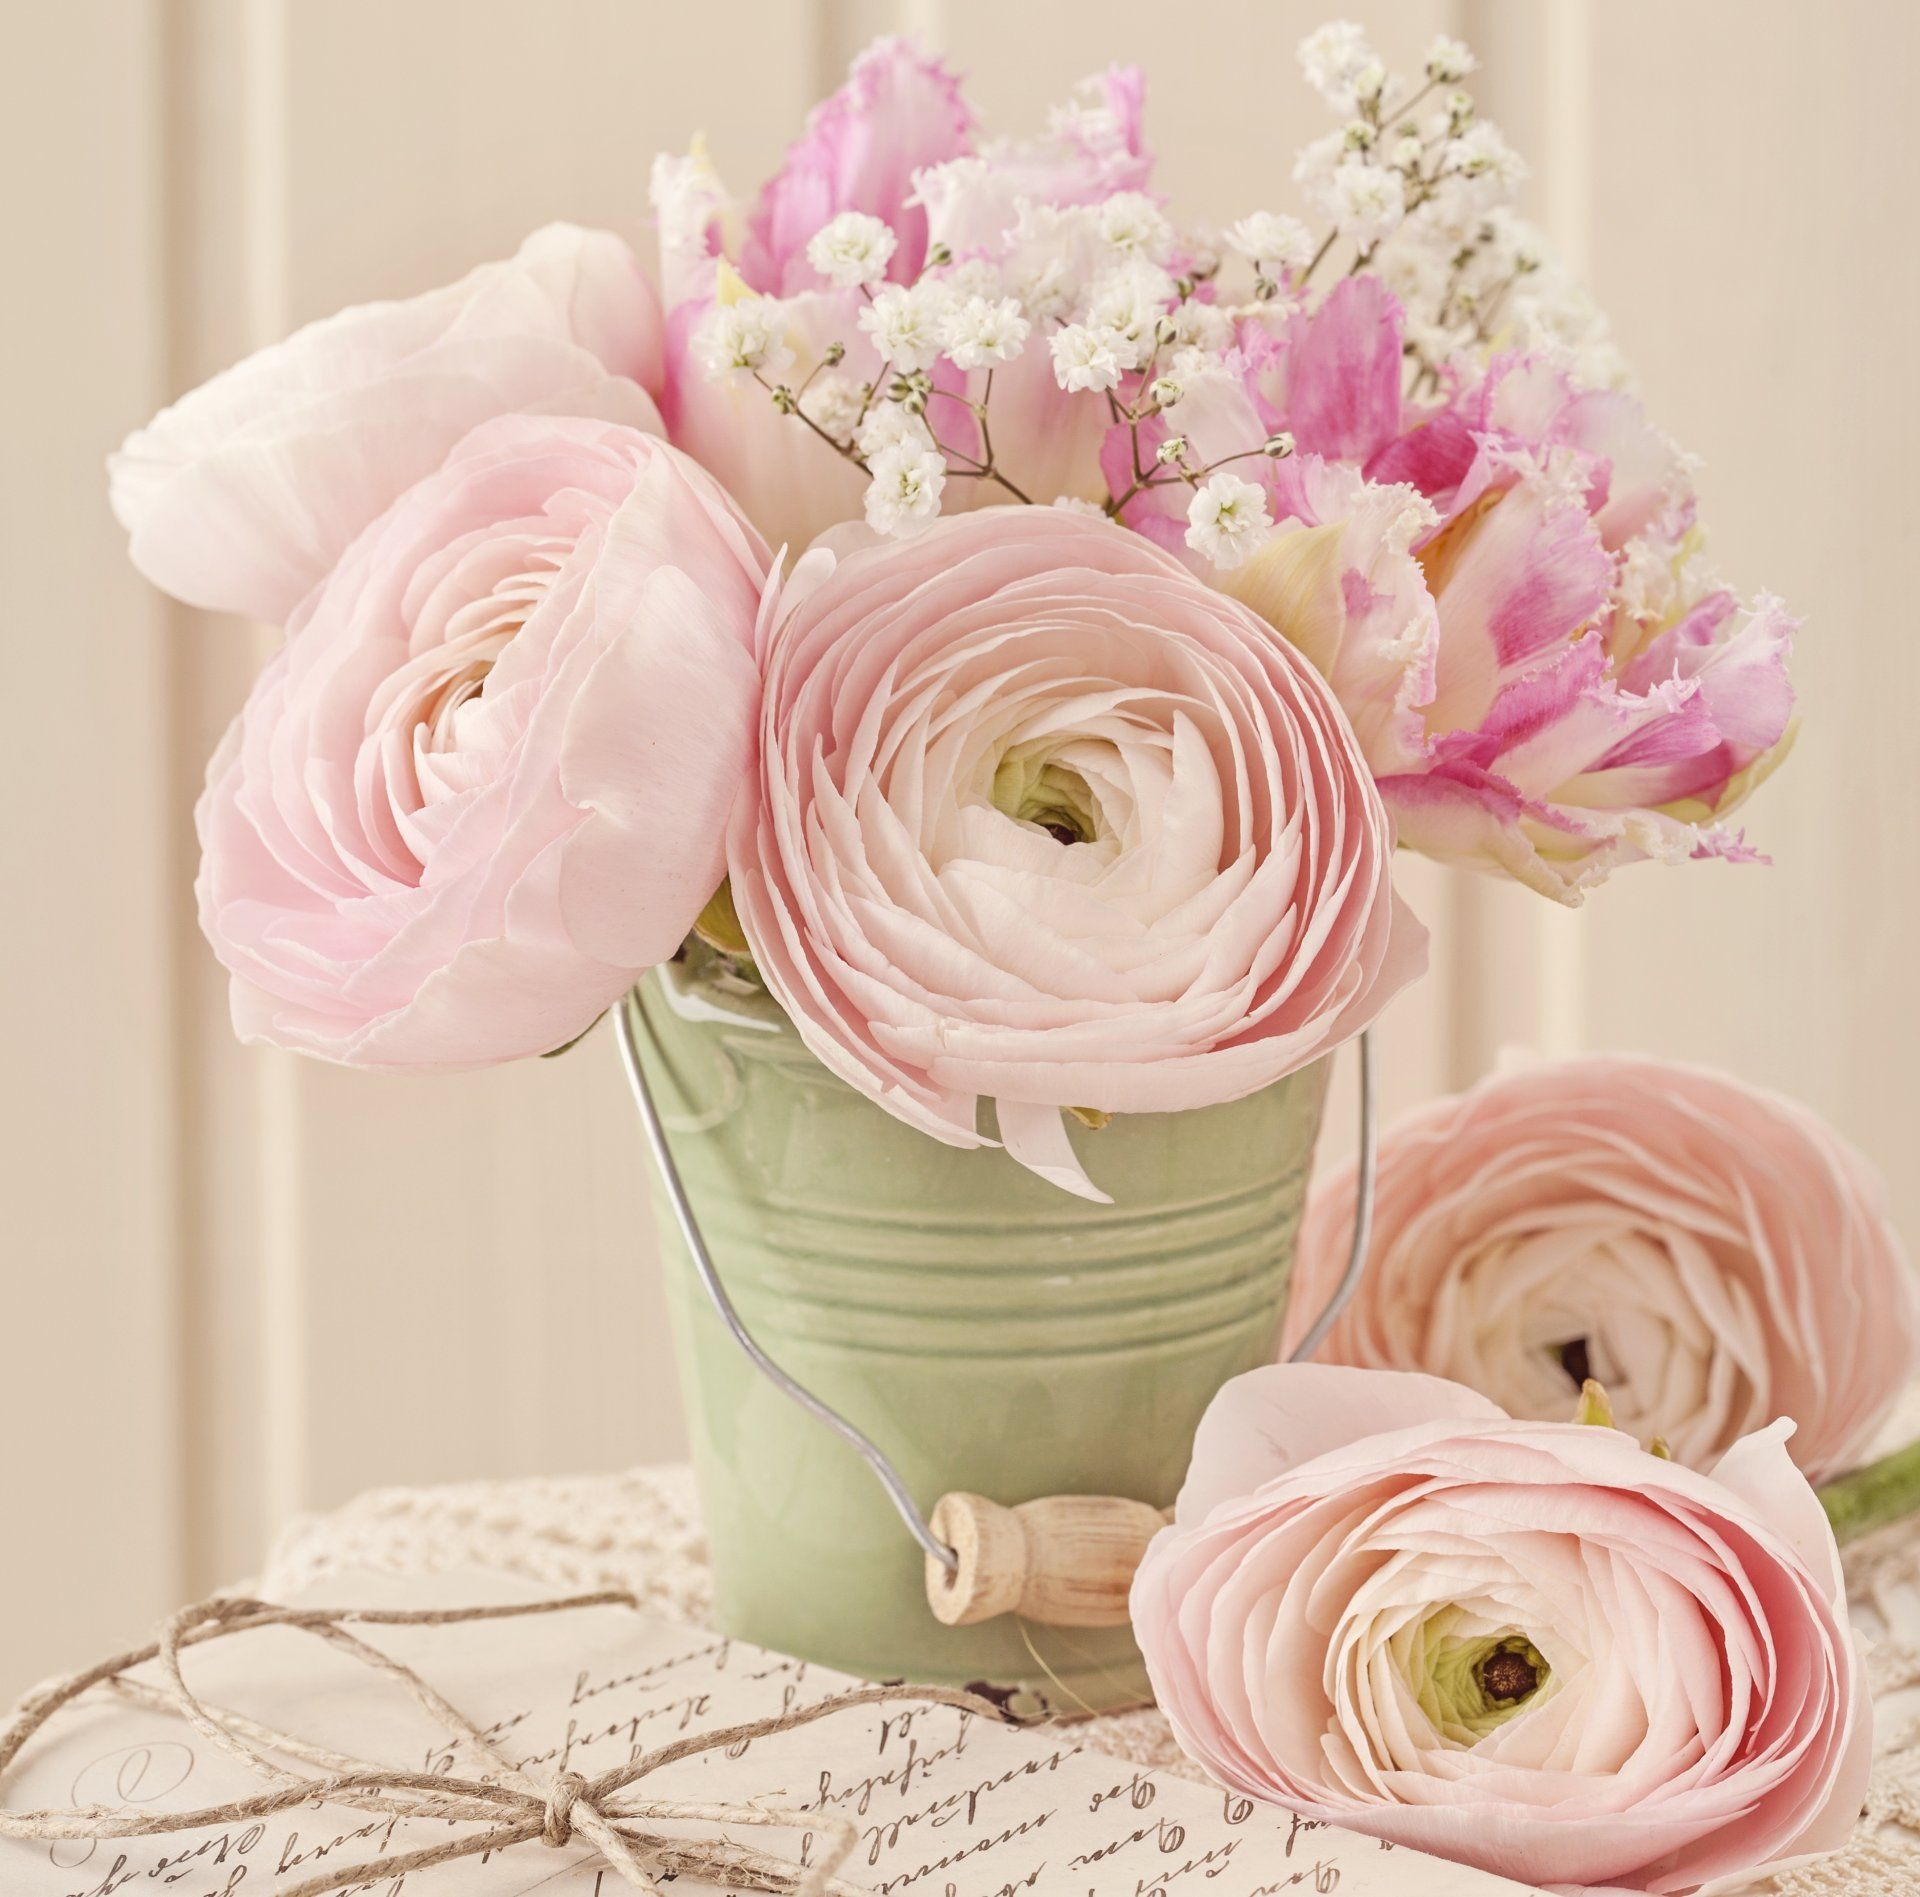 vintage style roses pink flower bouquet HD wallpaper